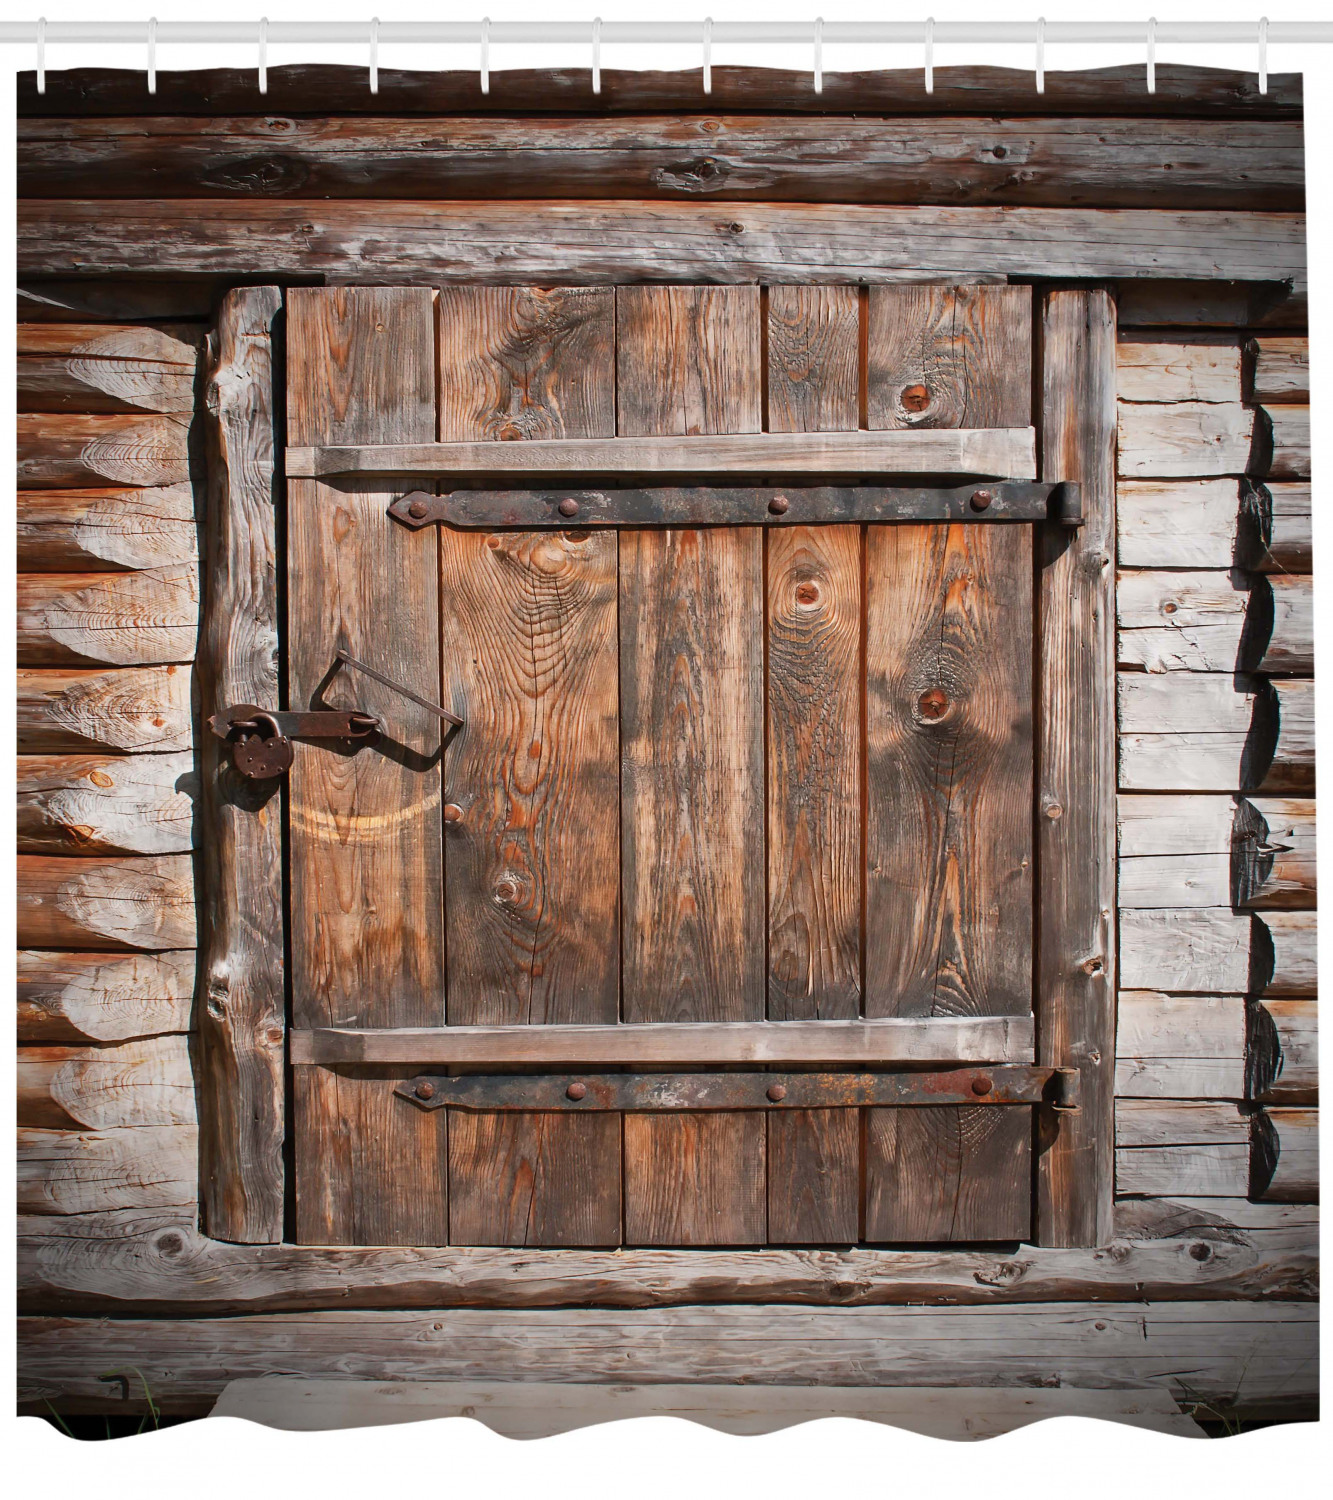 Vintage Shower Curtain Rustic Wooden Door Of Old Barn In